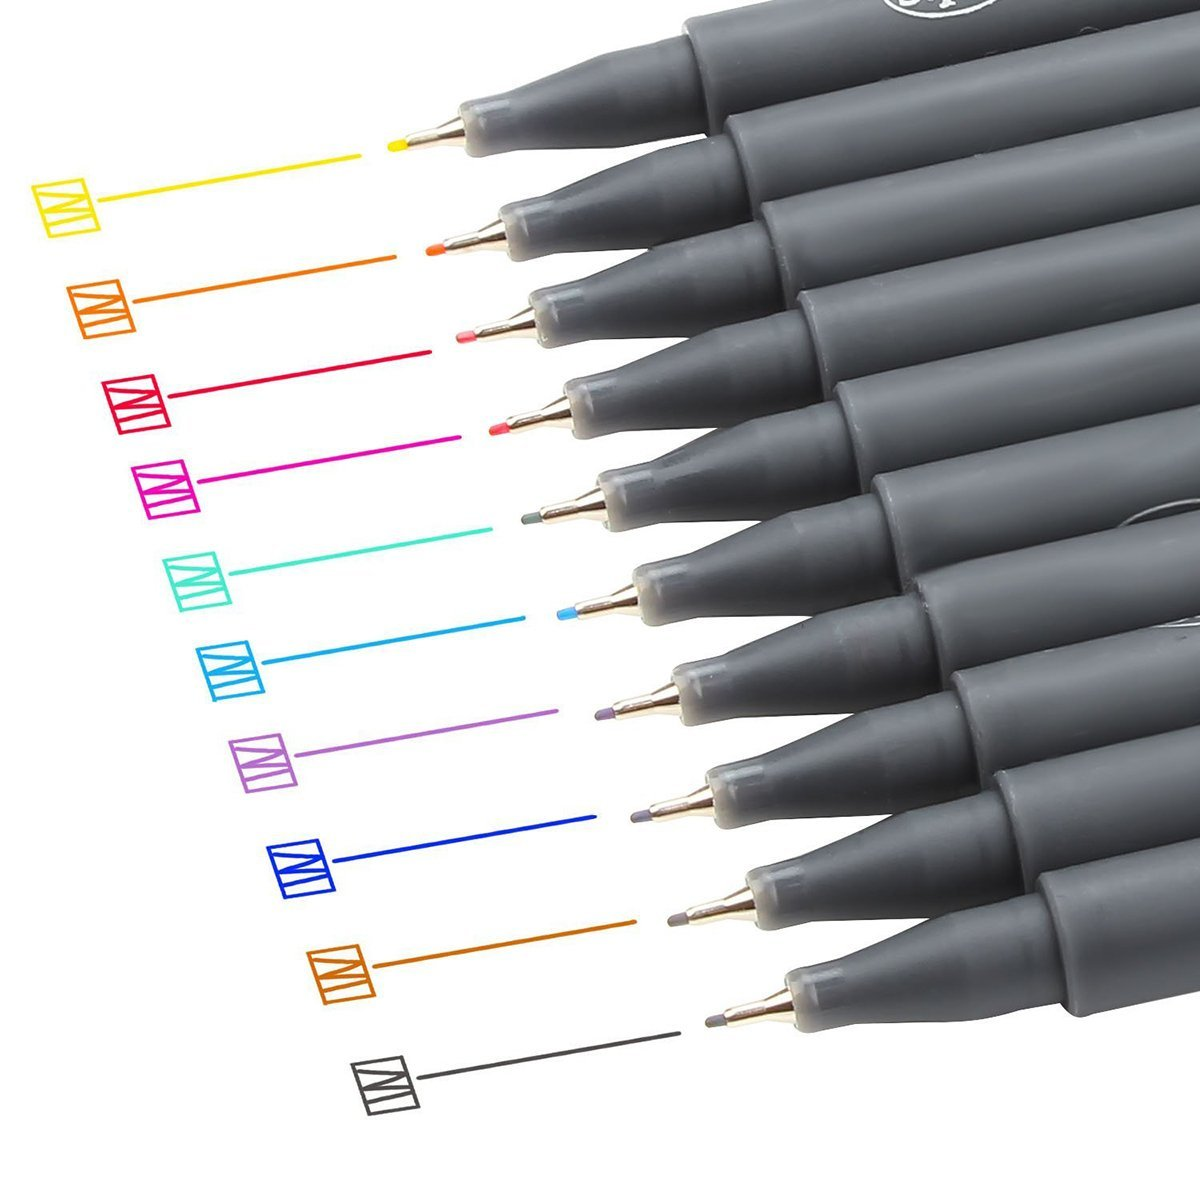 NUOLUX 10pcs Fineliner Color Pen Set 0.38mm Fine Line Drawing Pen Porous Fine Point Markers Perfect for Art Projects